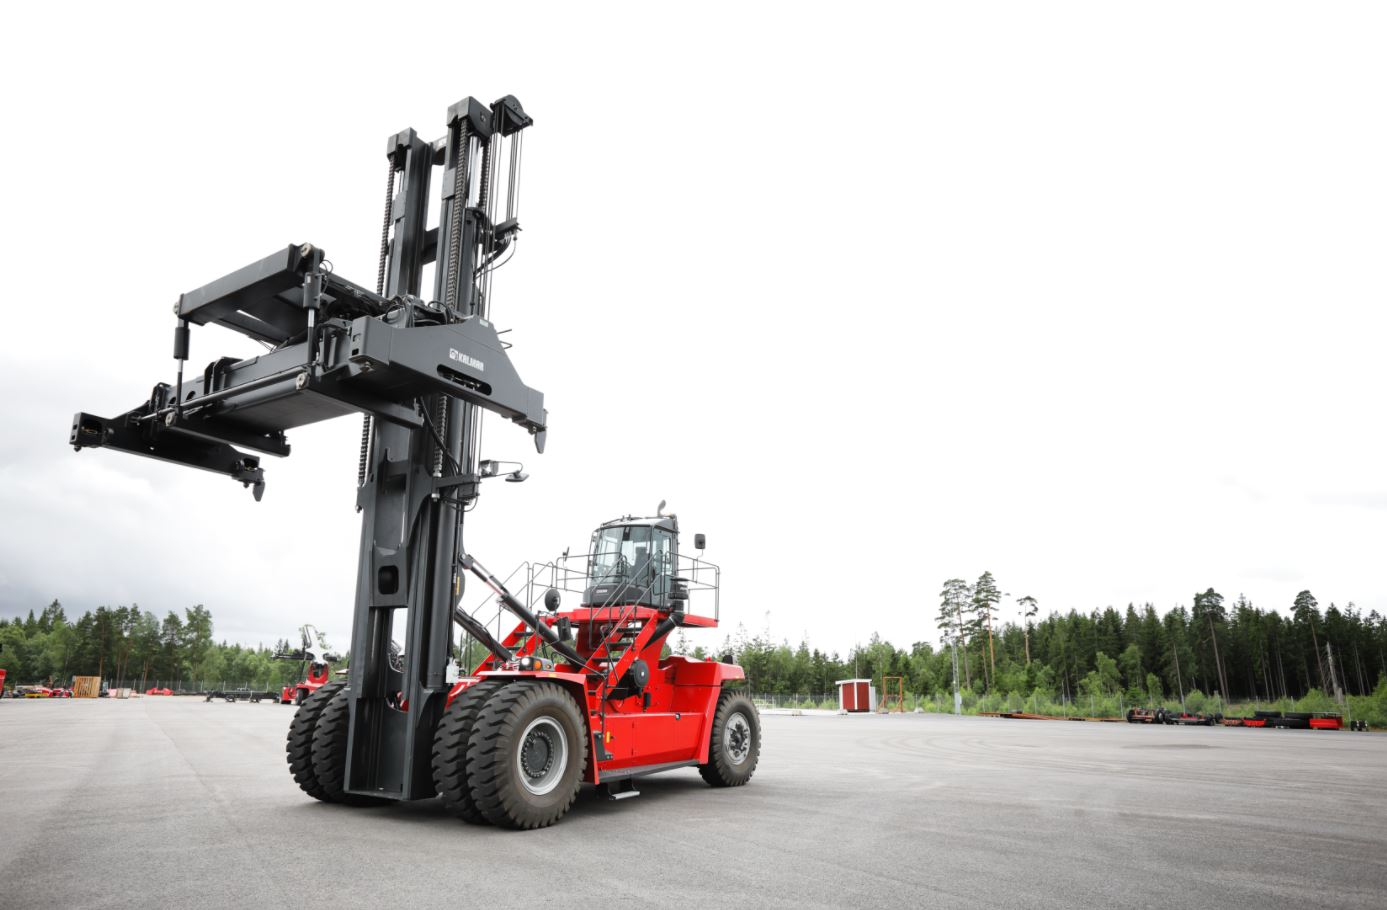 Kalmar has announced it will unveil new container handling technology